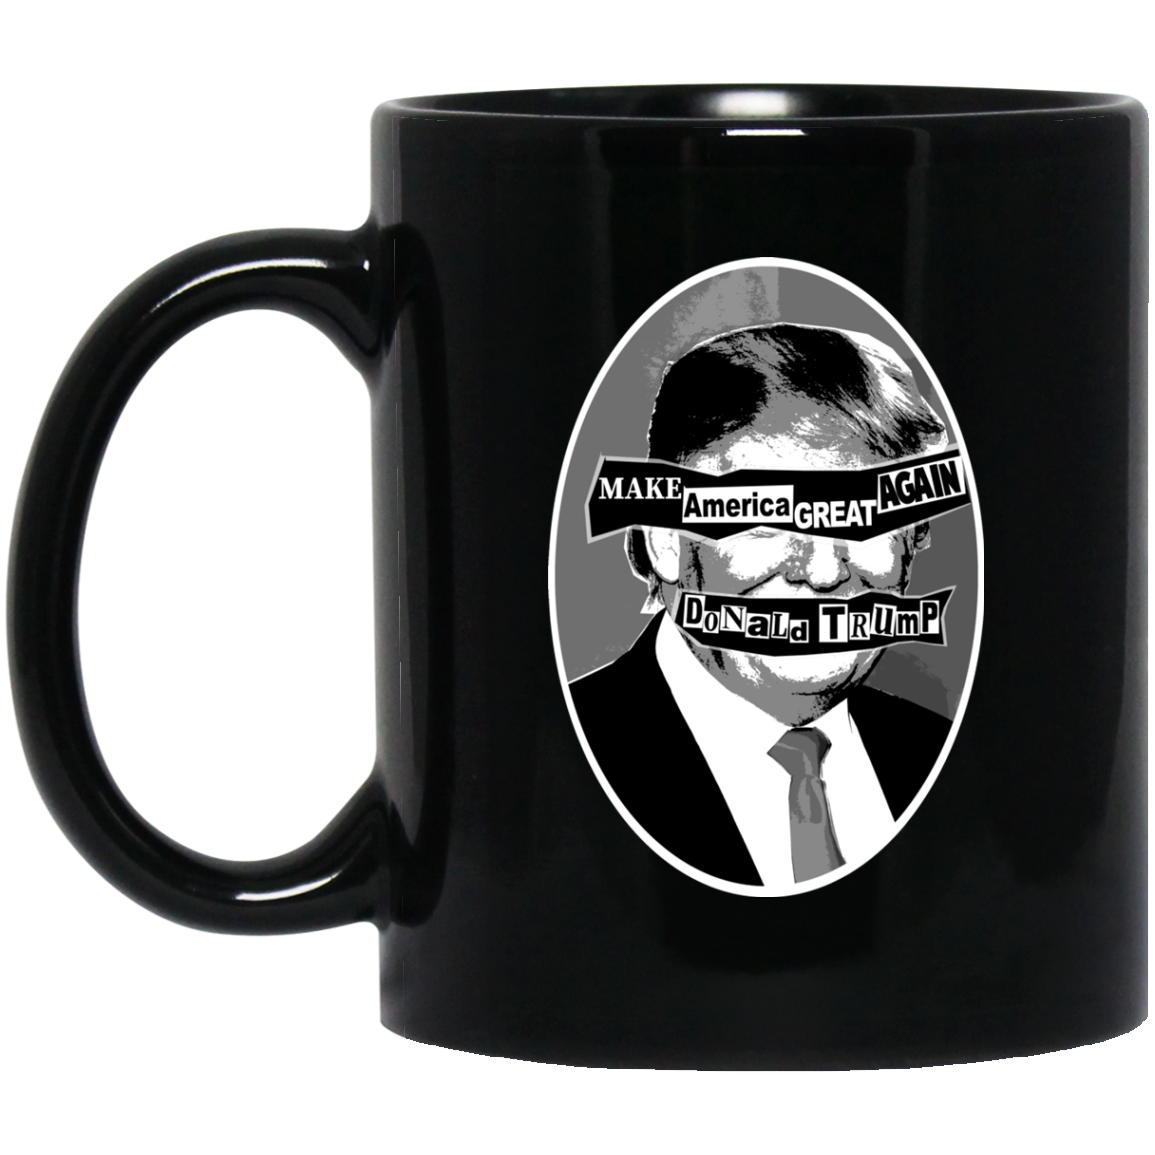 GOD SAVE THE PREZ: 11 oz. Black Mug